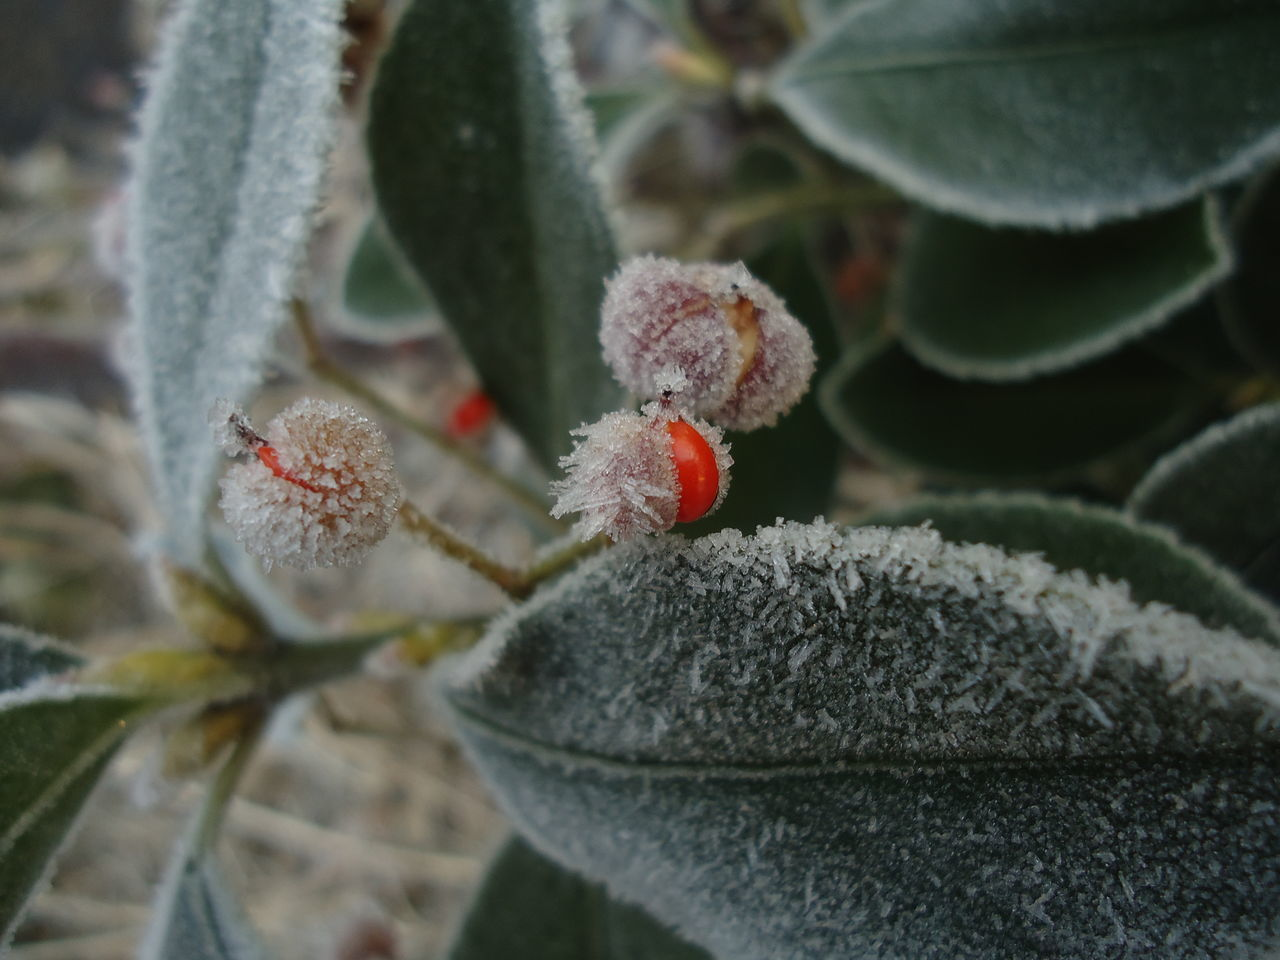 Beauty In Nature Close-up Cold Temperature Day Freshness Growth Nature No People Outdoors Plant Srinagar Kashmir Winter